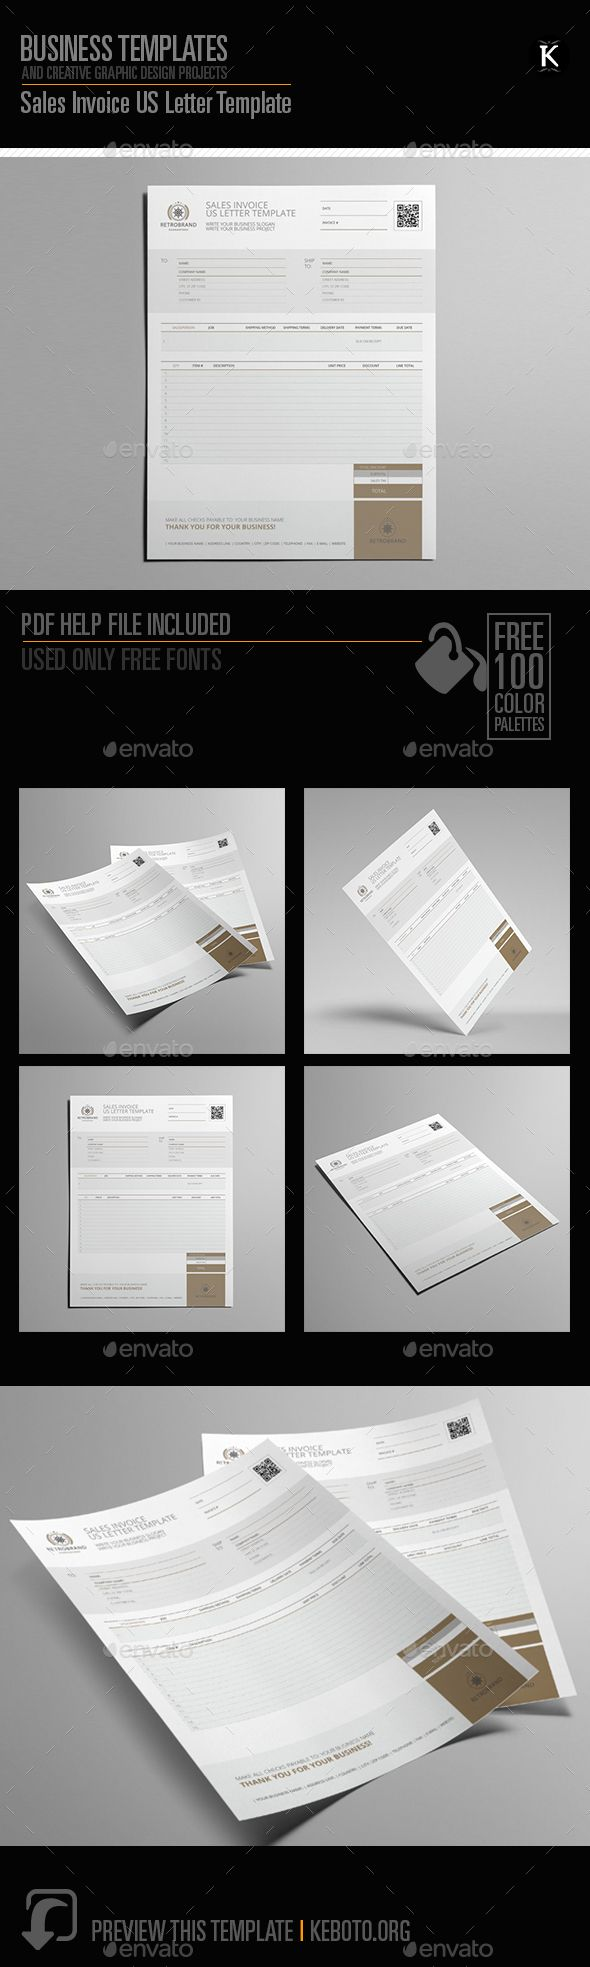 Sales Invoice US Letter Template